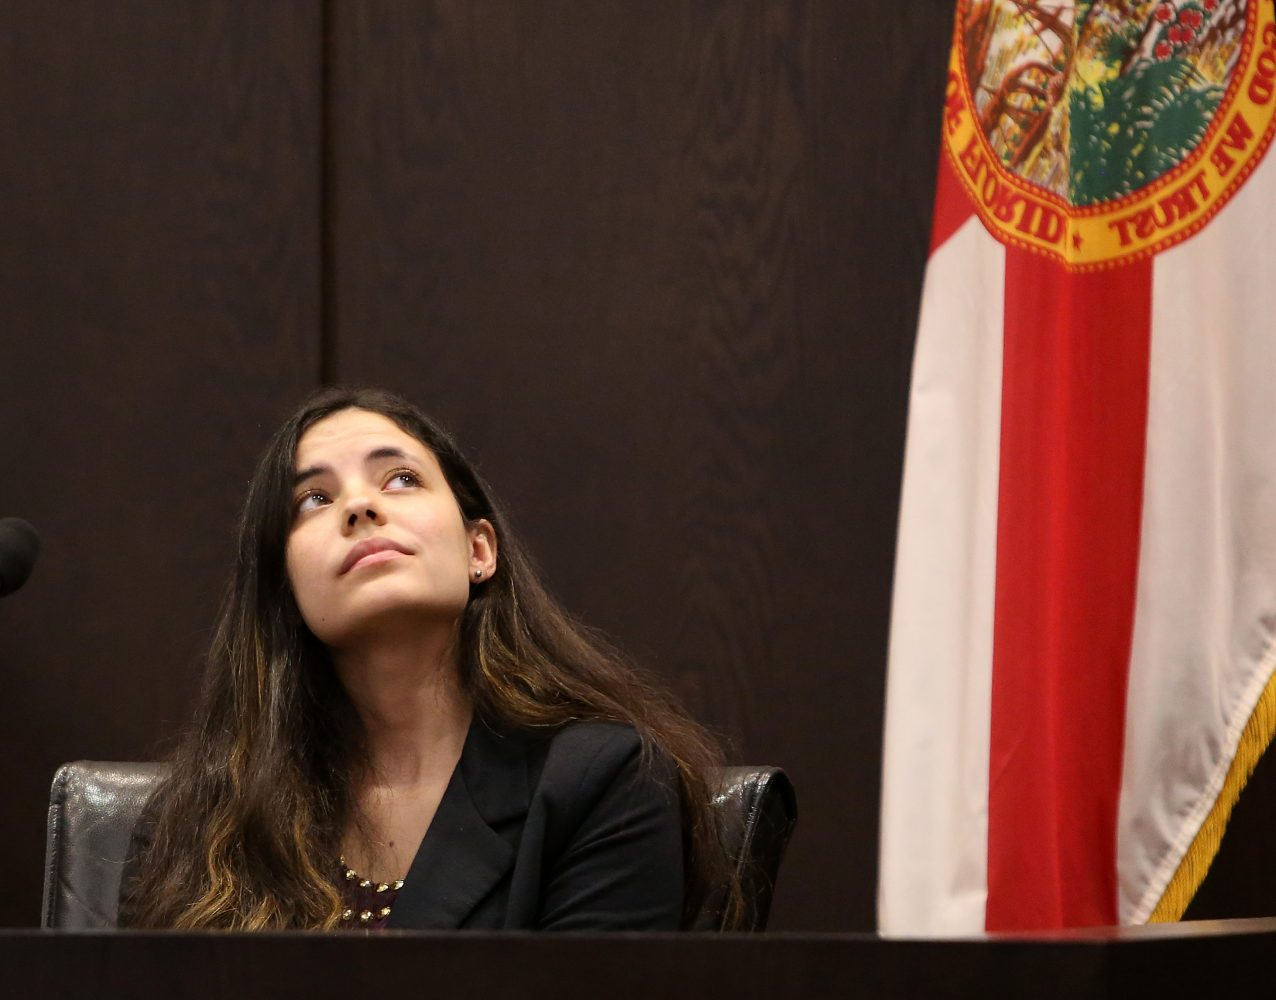 Erika Friman, the girlfriend of victim Christian Aguilar, looks up during a break in her testimony during the murder trial of Pedro Bravo in courtroom 1B of the Alachua County Criminal Justice Center Wednesday, August 6, 2014.  (Doug Finger/The Gainesville Sun/Pool)